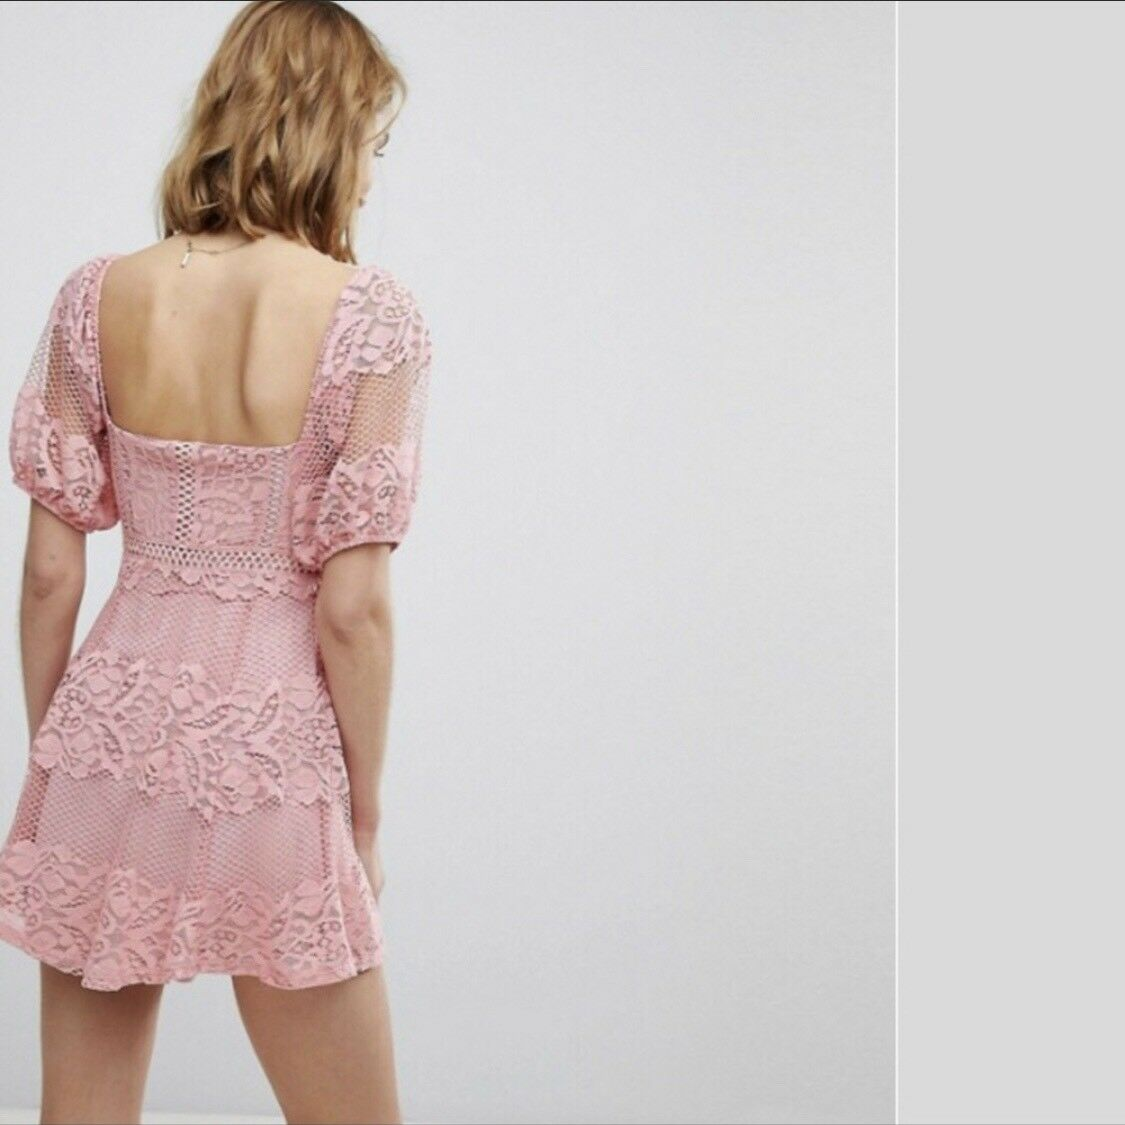 FREE PEOPLE Be Your Baby Lace Lace Lace Mini Dress color Pink Size Large-L  128 FP NWT 4949f2